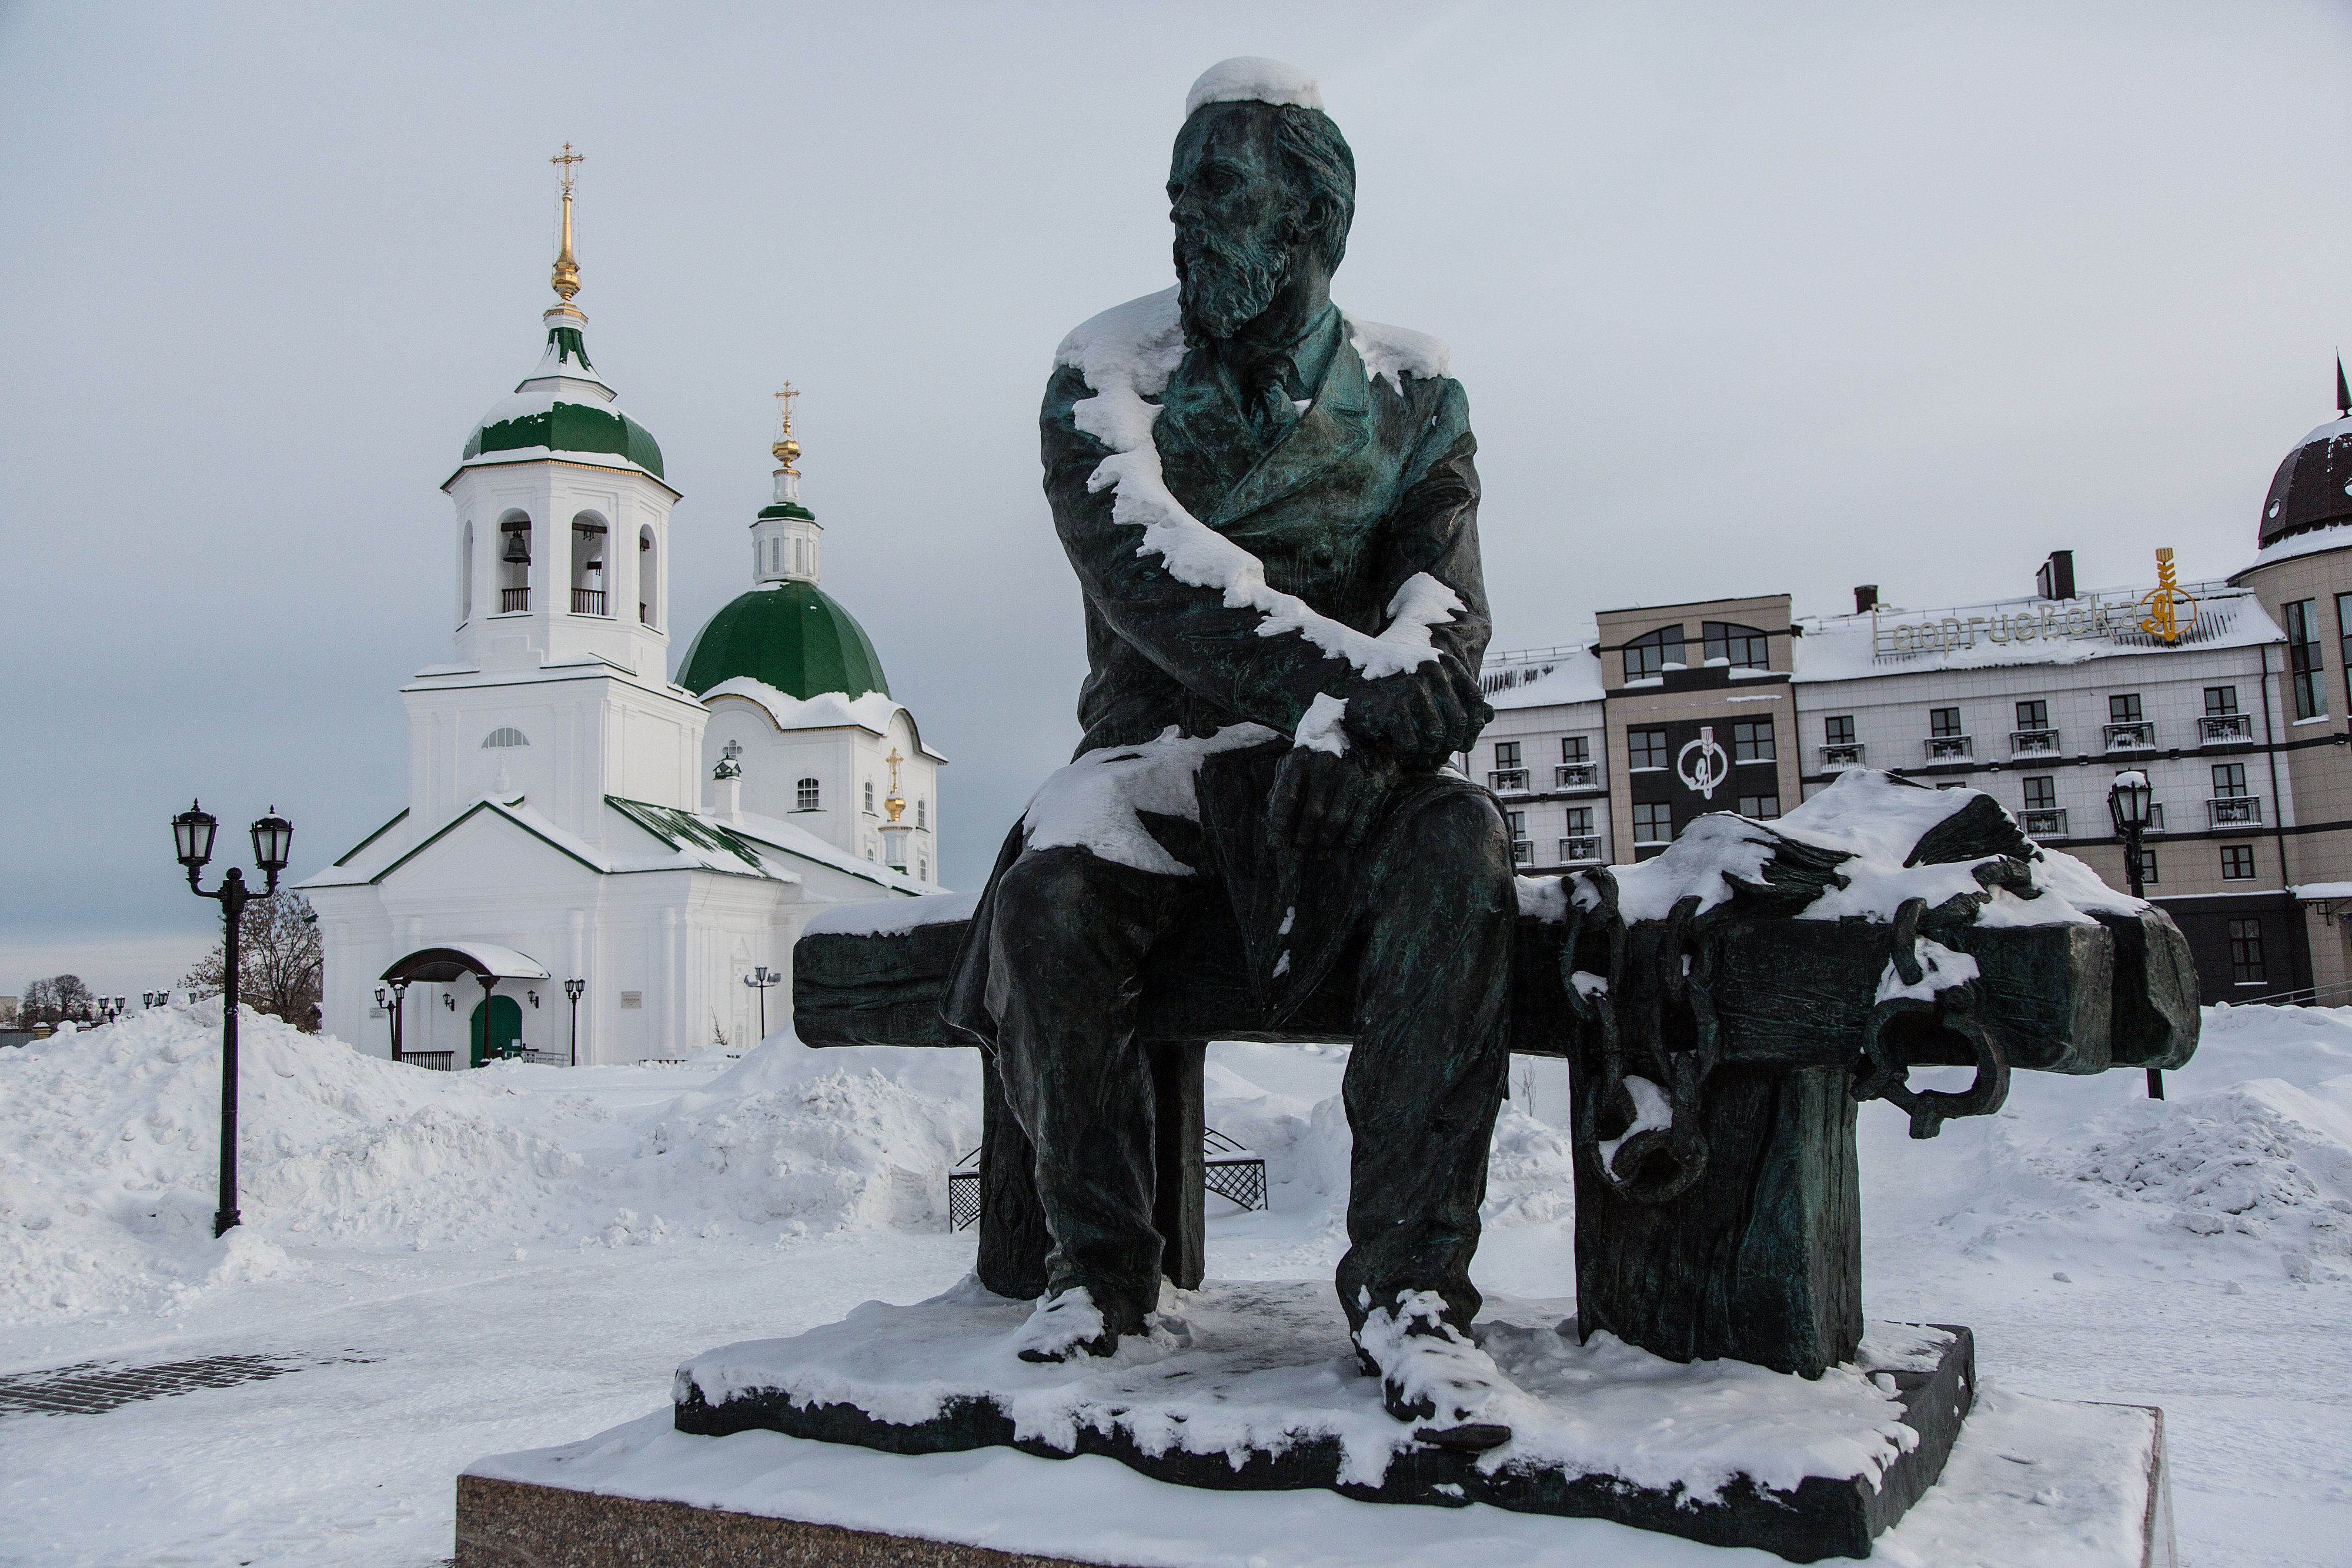 A monument to Fyodor Dostoyevsky in Tolbolsk, Siberia, where he was once imprisioned.